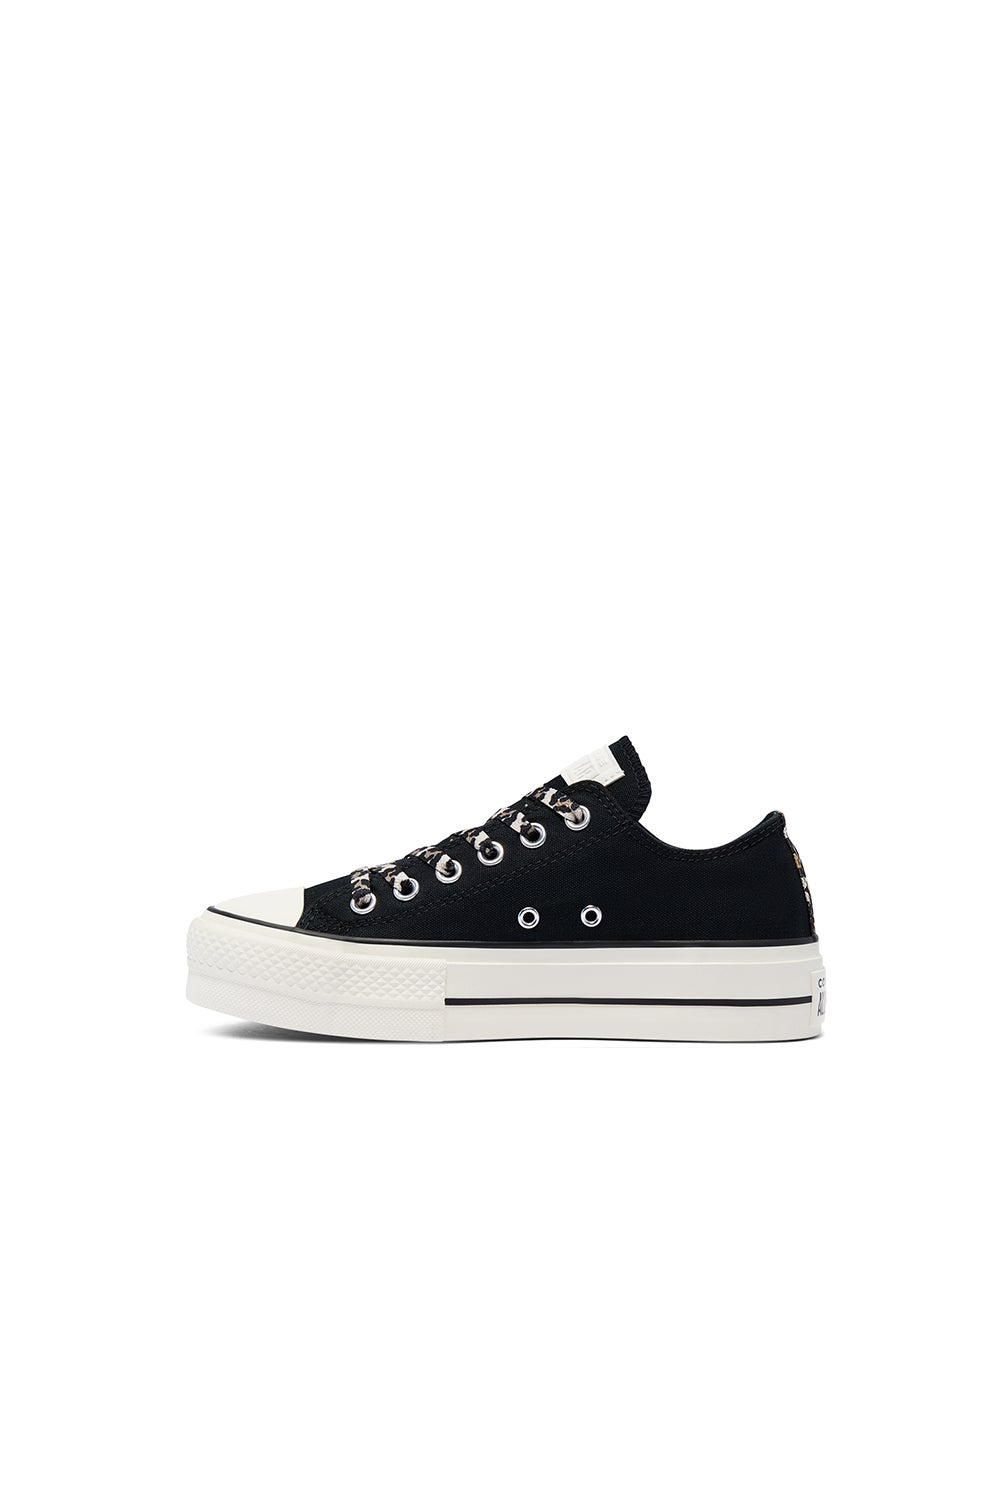 Converse Chuck Taylor Lift Archive Print Low Top Black